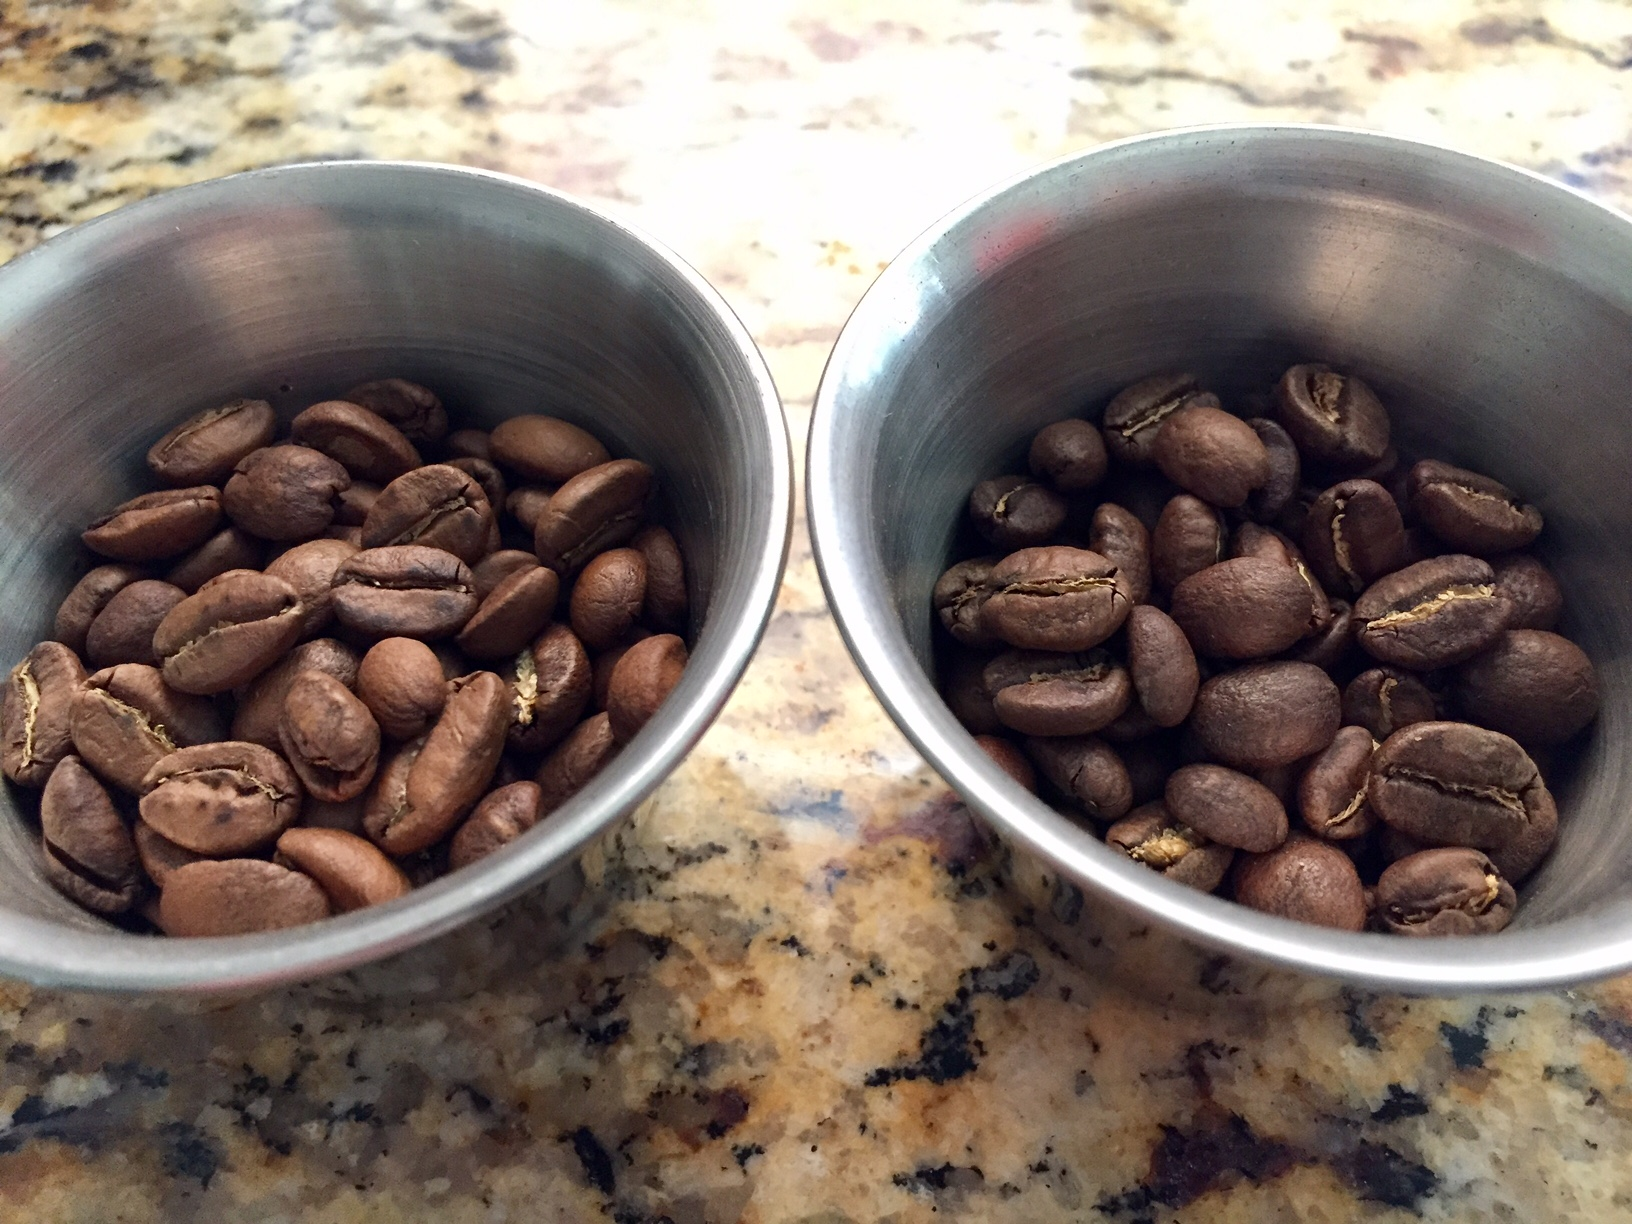 As compared to last week's Commonwealth Ontology espresso blend, Cascadia (right) is roasted considerably darker.